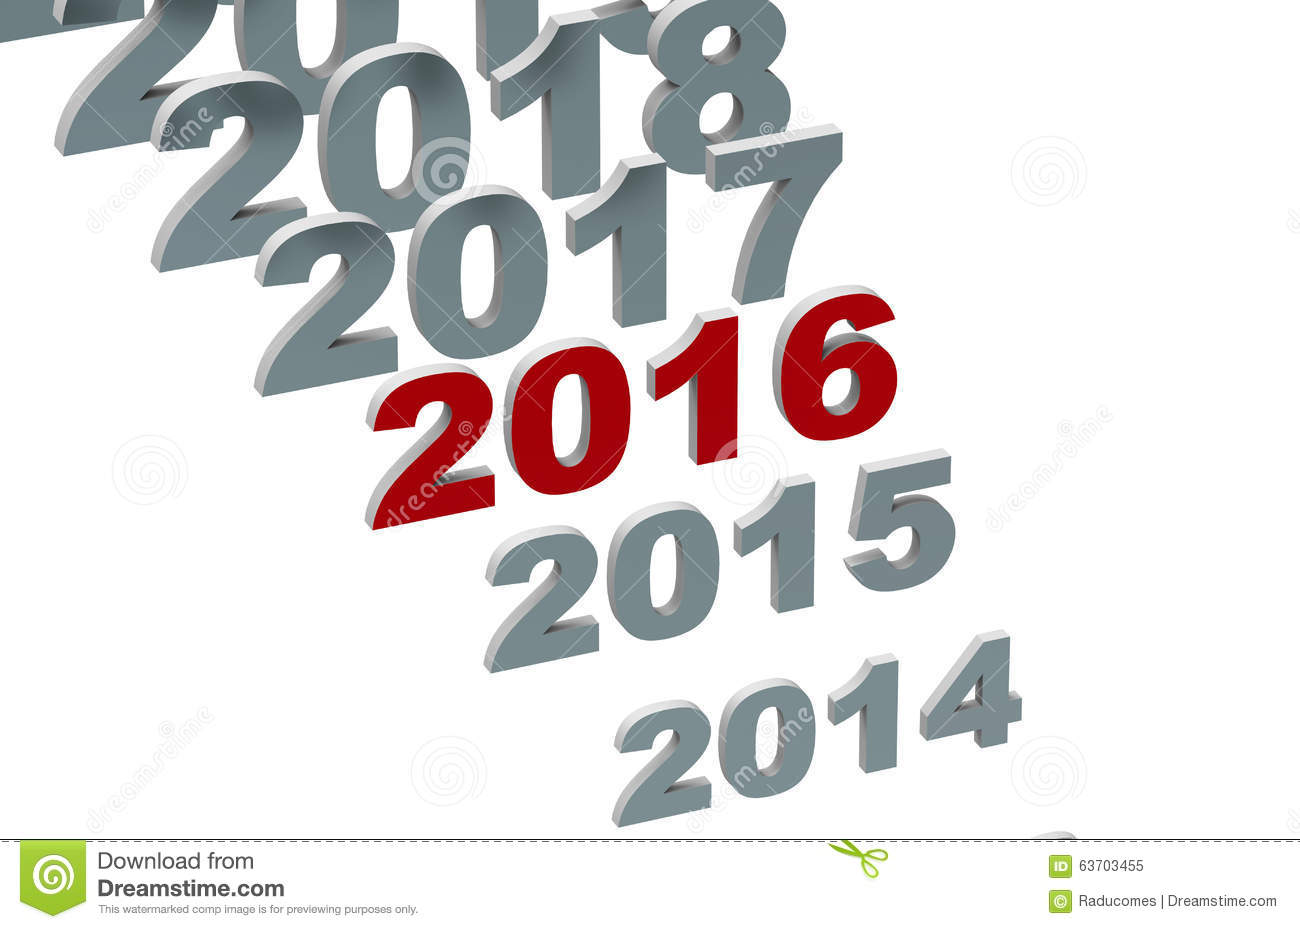 Year Calendar Clipart : Years timeline concept stock illustration image